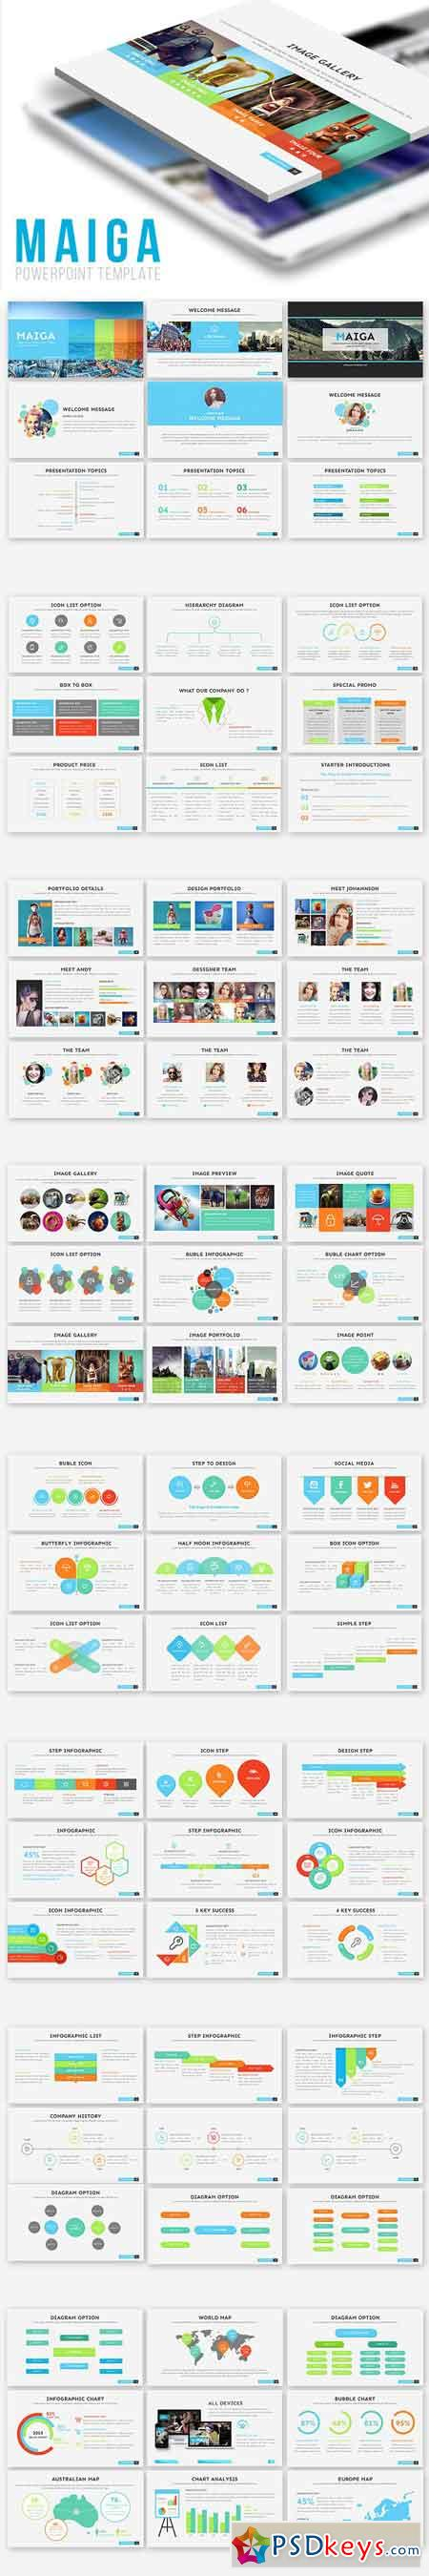 Maiga PowerPoint Template 996832